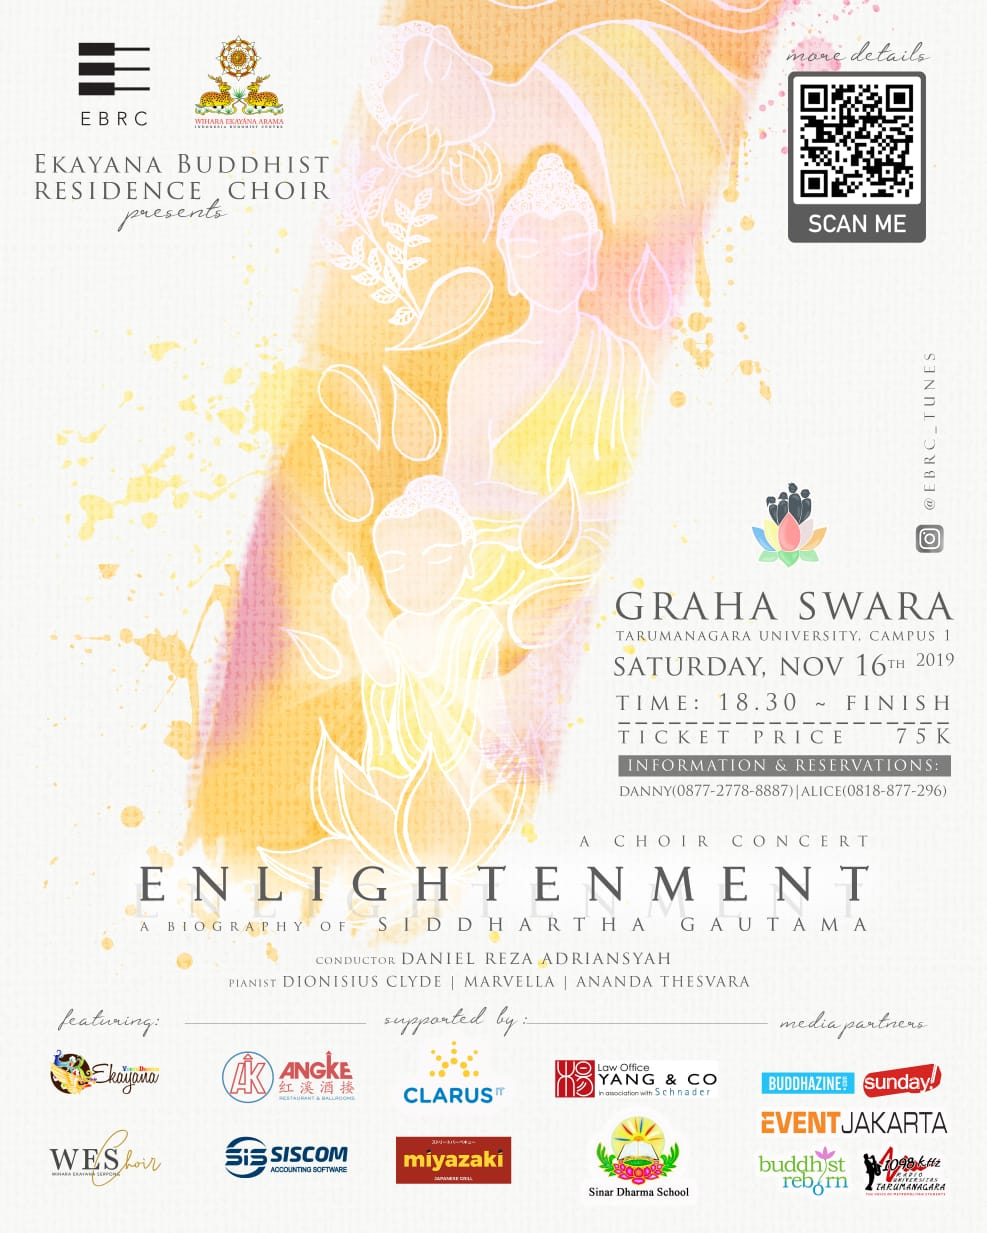 Elightenment A Biography of Siddhartha Gautama